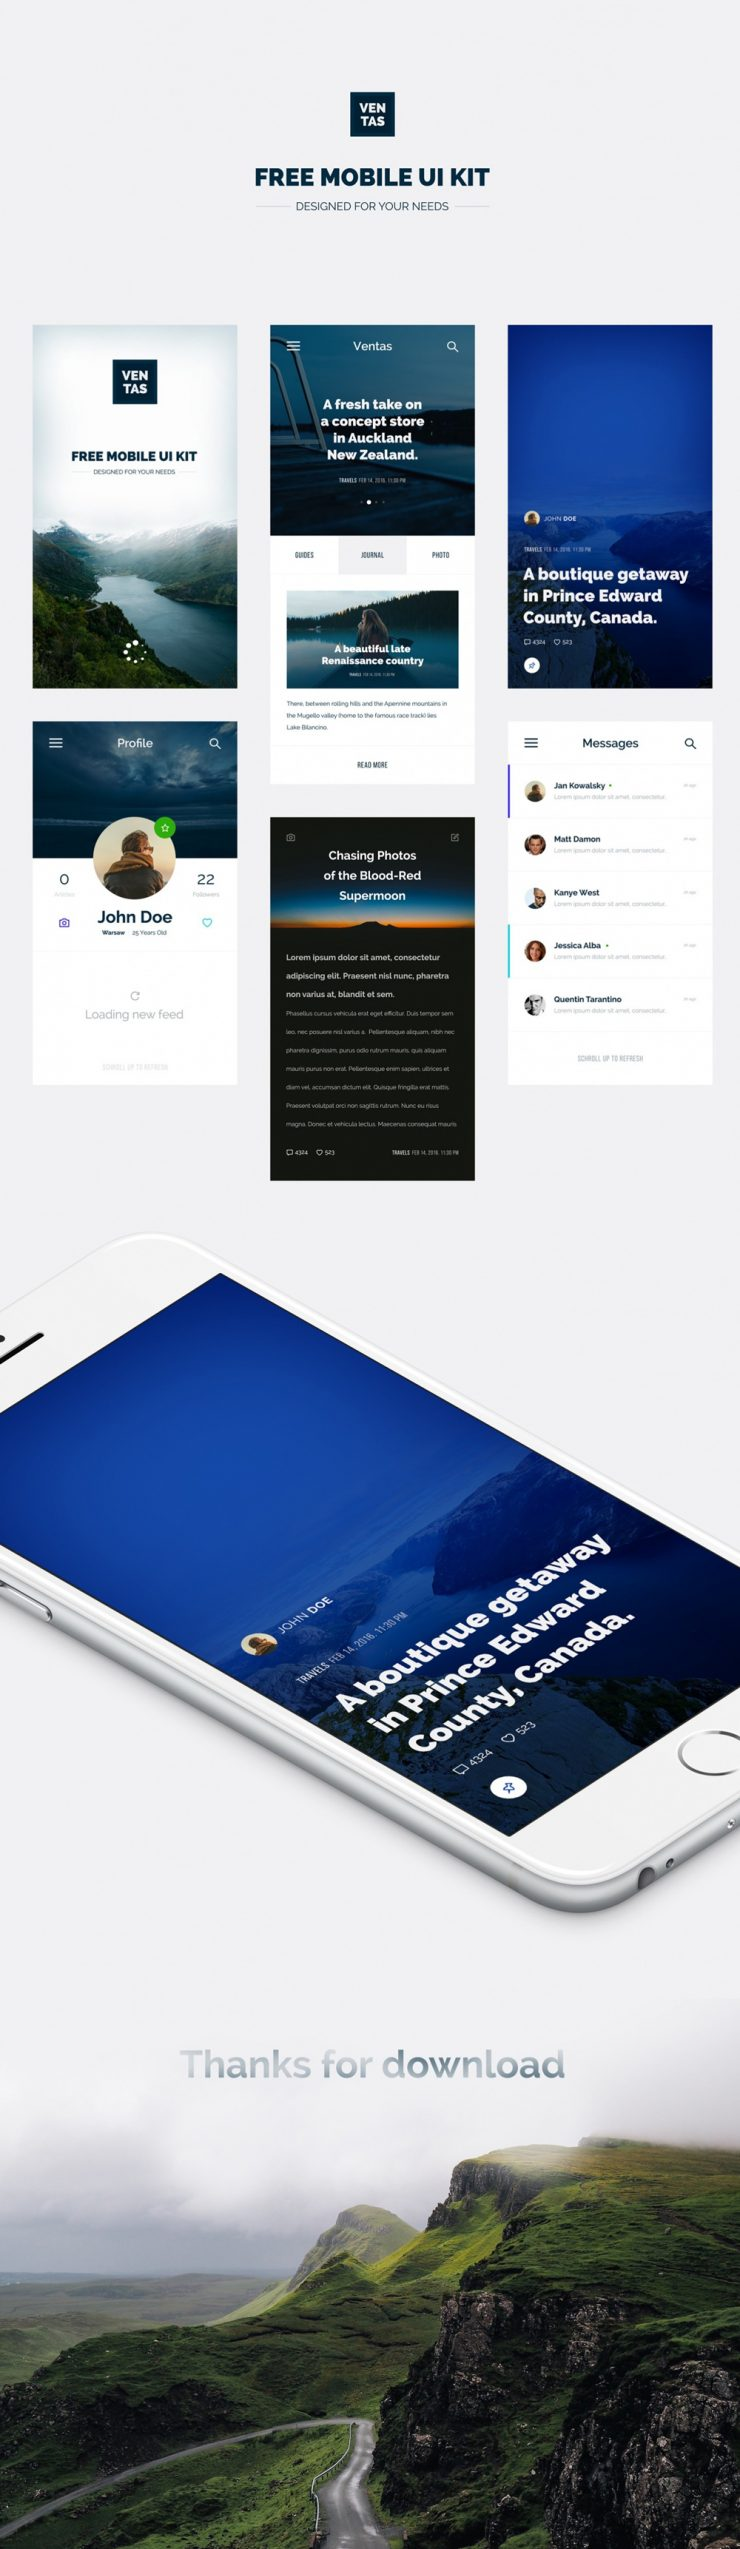 Travel Magazine Mobile App UI Kit Free PSD Web Resources, Web Elements, Web Design Elements, Web, Ventas Mobile UI kit, ventas mobile, ventas, User Interface, ui set, Ui Kits, ui kit, UI elements, UI, Resources, Psd Templates, PSD Sources, psd resources, PSD images, psd free download, psd free, PSD file, psd download, PSD, Photoshop, Mobile, Layered PSDs, Layered PSD, Interface, GUI Set, GUI kit, GUI, Graphics, Graphical User Interface, Freebies, free ui kits, Free Resources, Free PSD, free download, Free, Elements, download psd, download free psd, Download, Design Resources, Design Elements, Adobe Photoshop,